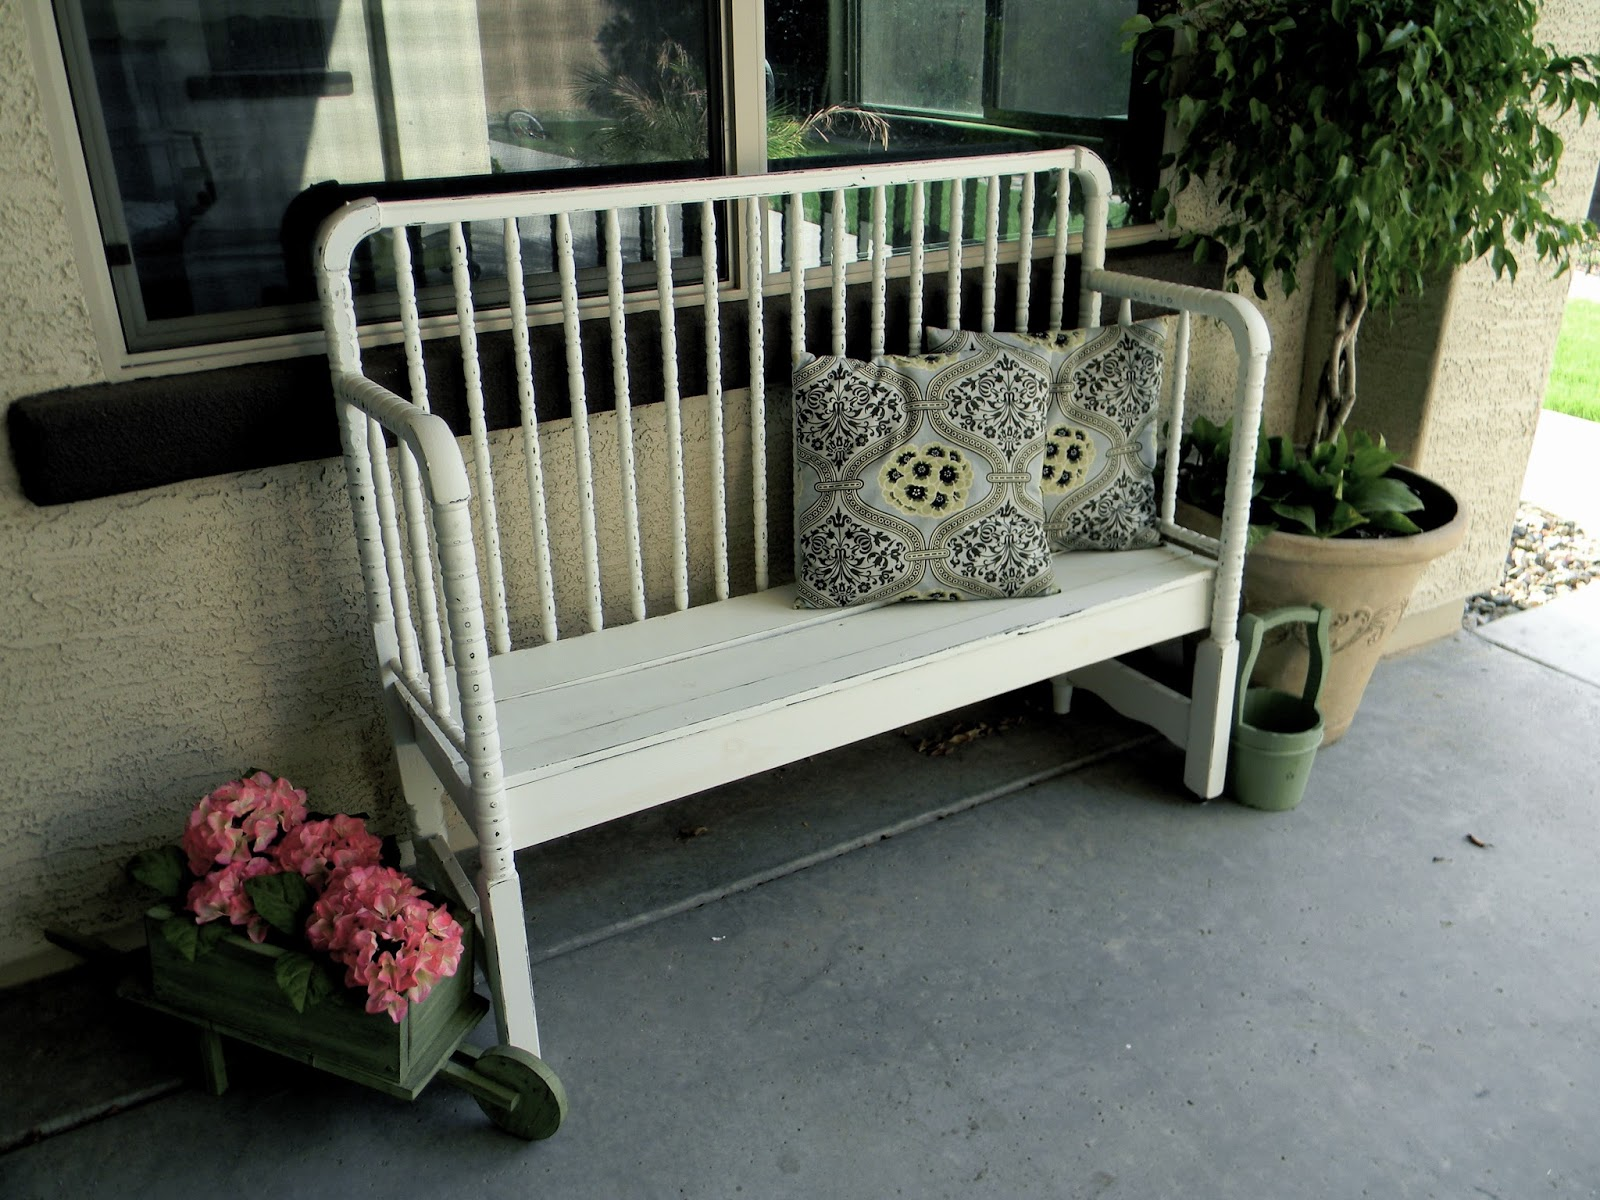 Baby Crib turned into a Bench